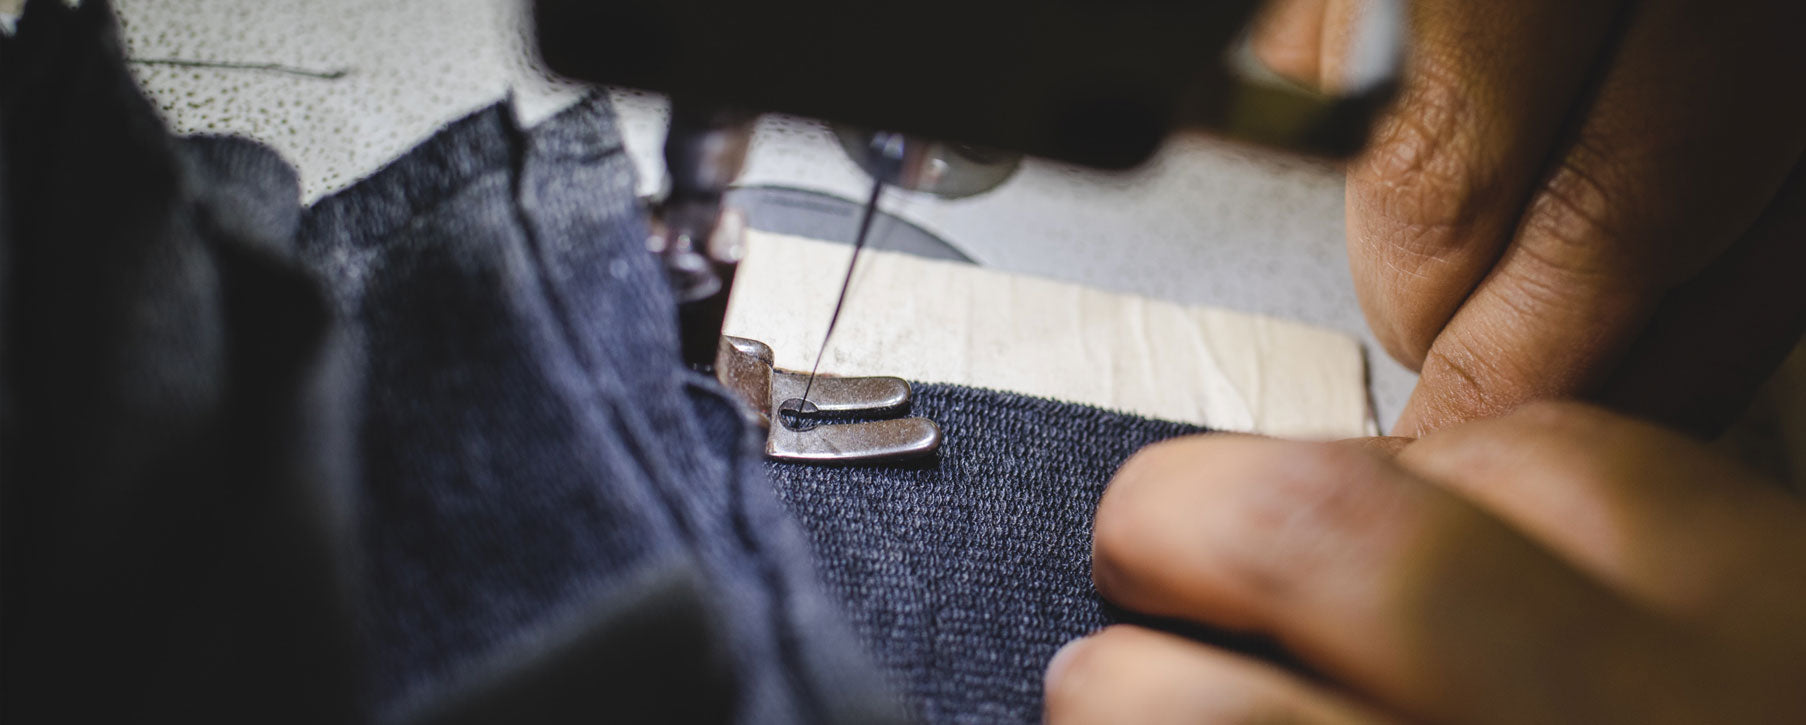 Sewing operator stitching french terry fabric in worker owned cooperative in Peru